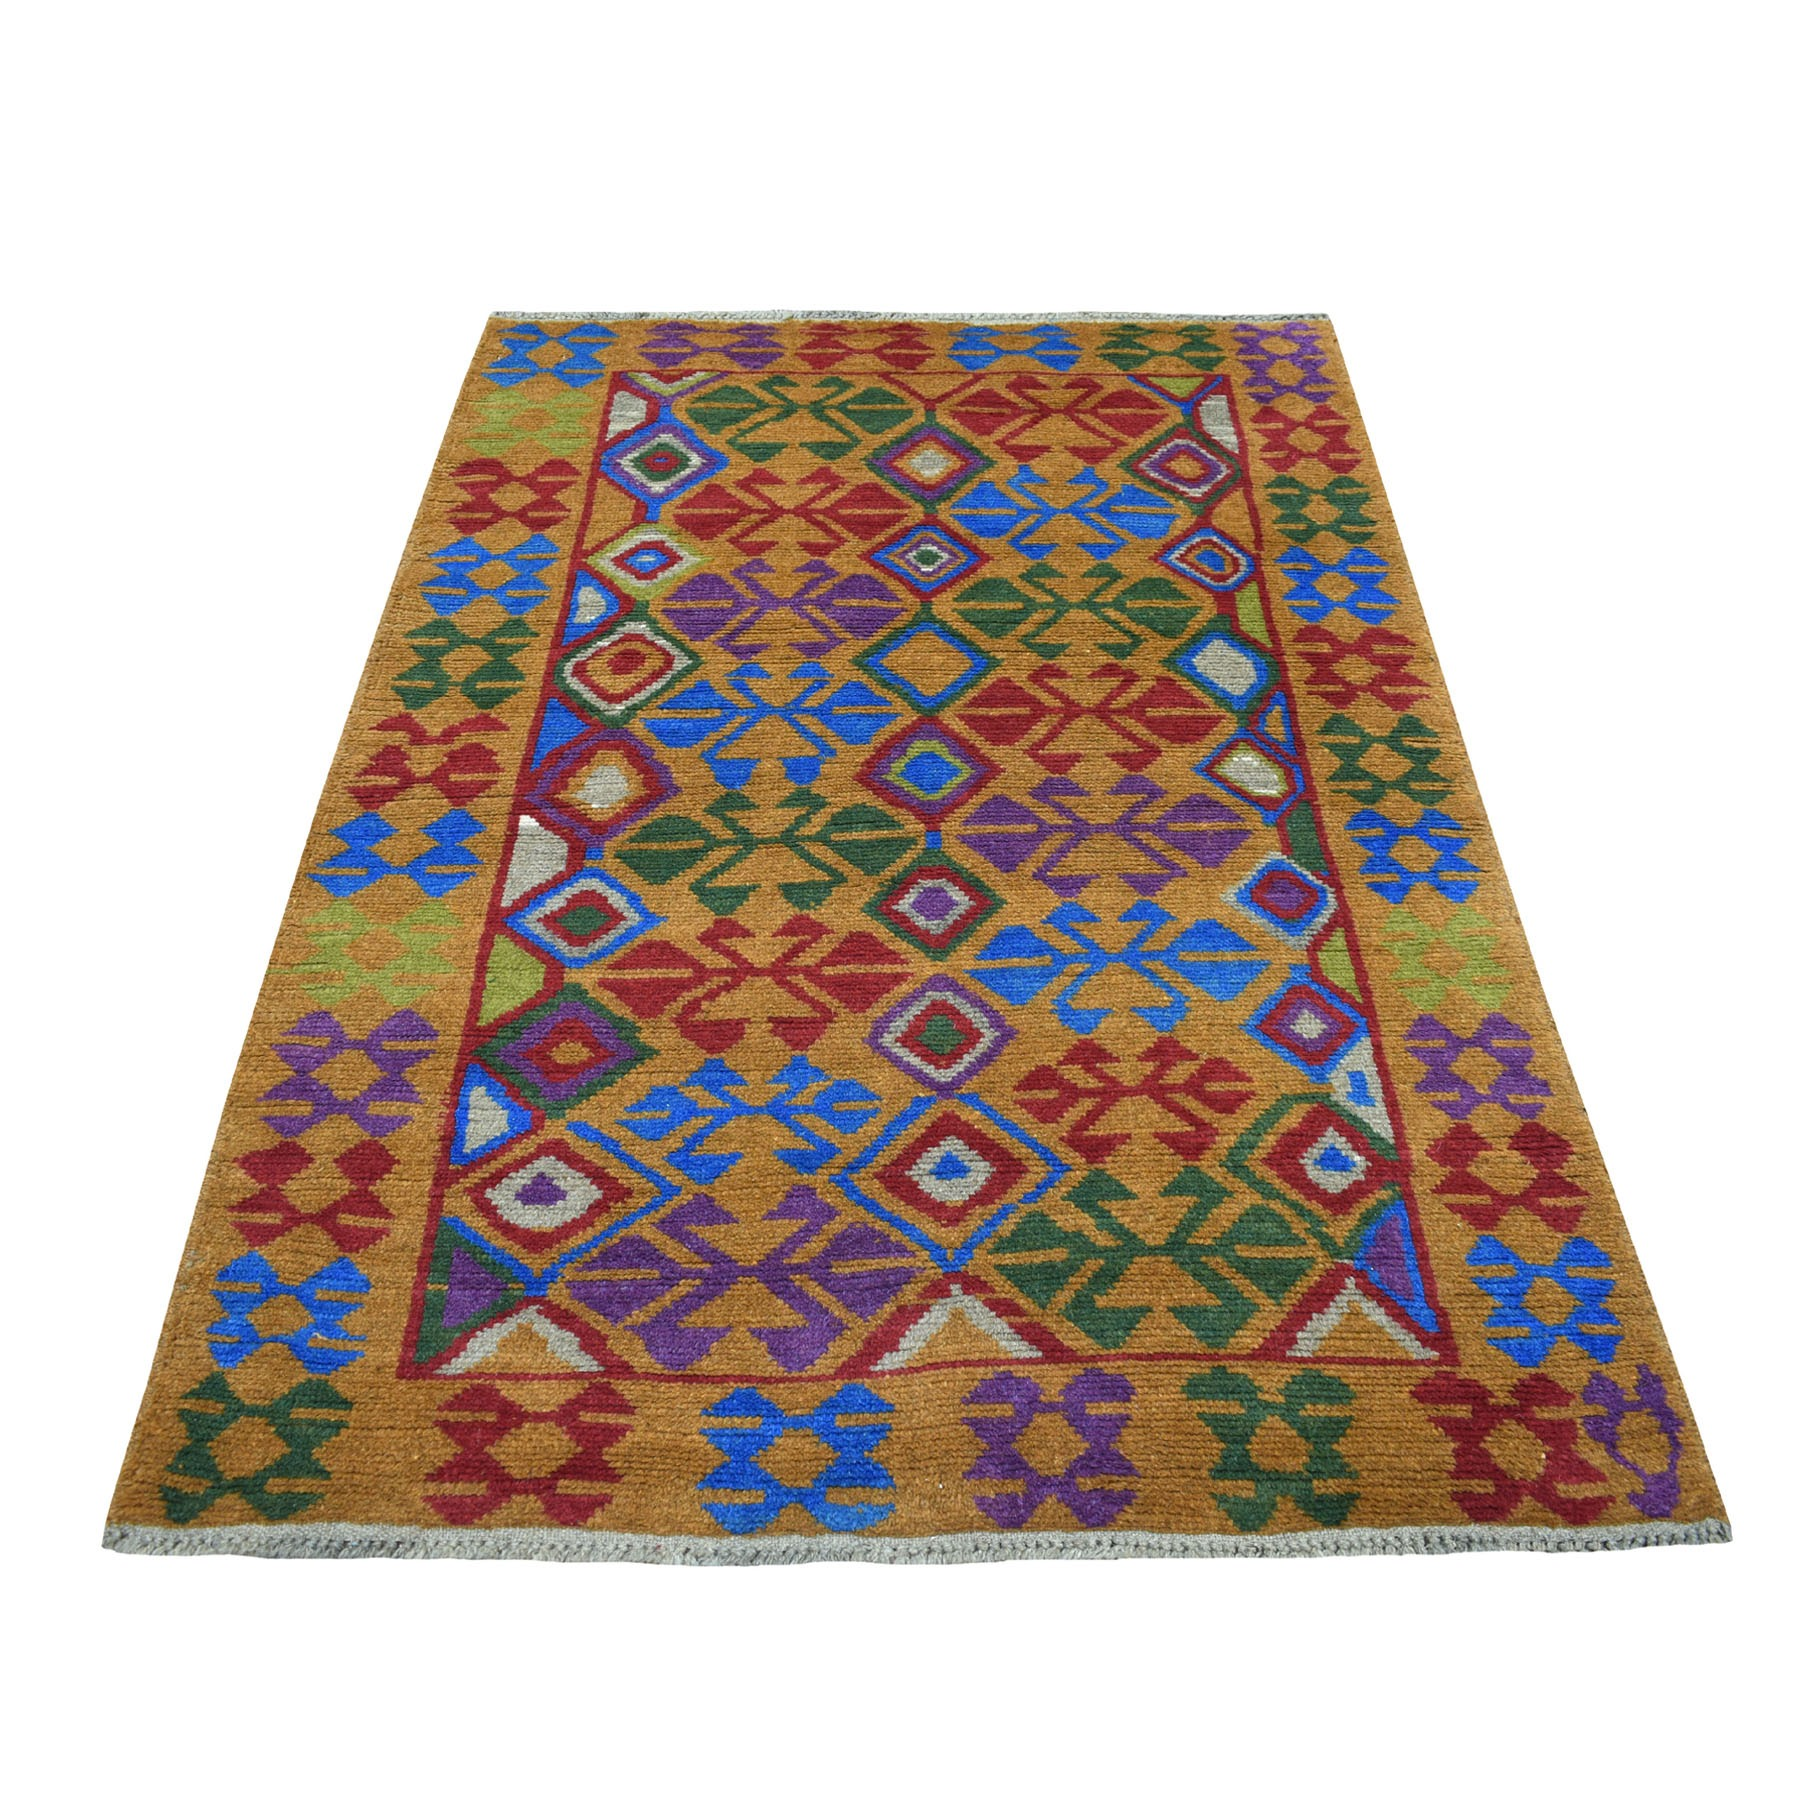 4'x6' Natural Dyes Colorful Afghan Baluch Tribal Design Hand Knotted Pure Wool Oriental Rug